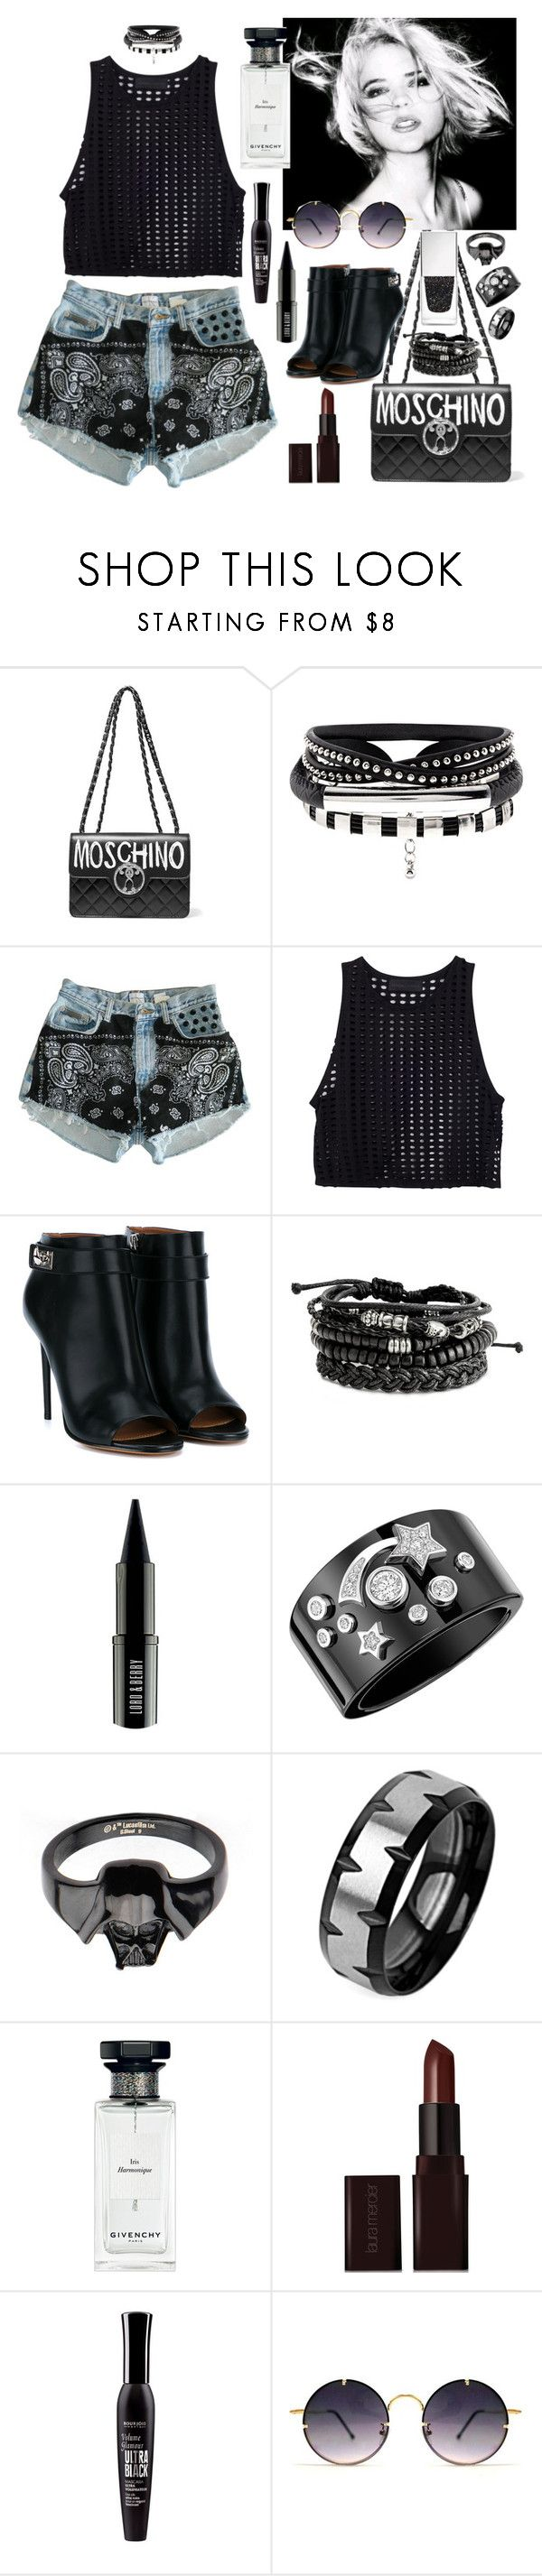 """""""011917B"""" by terebol ❤ liked on Polyvore featuring Moschino, Levi's, Givenchy, Lord & Berry, Chanel, West Coast Jewelry, Laura Mercier, Bourjois and Spitfire"""